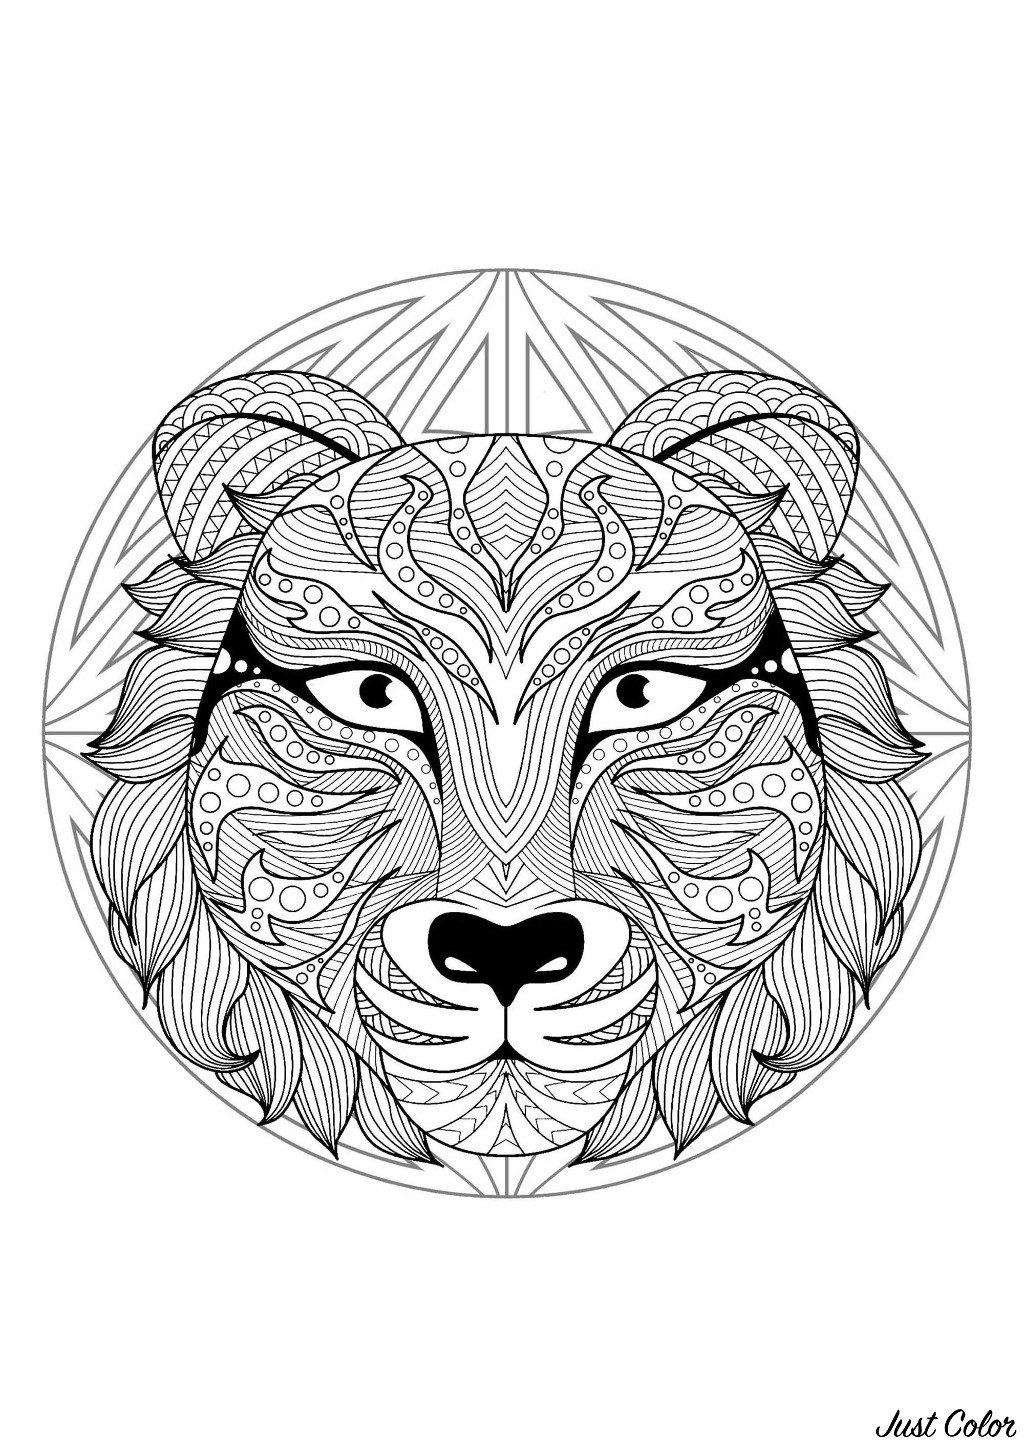 A Mandala featuring a tiger, for those who prefer to color concrete and living elements. Do whatever it takes to get rid of any distractions that may interfere with your coloring.